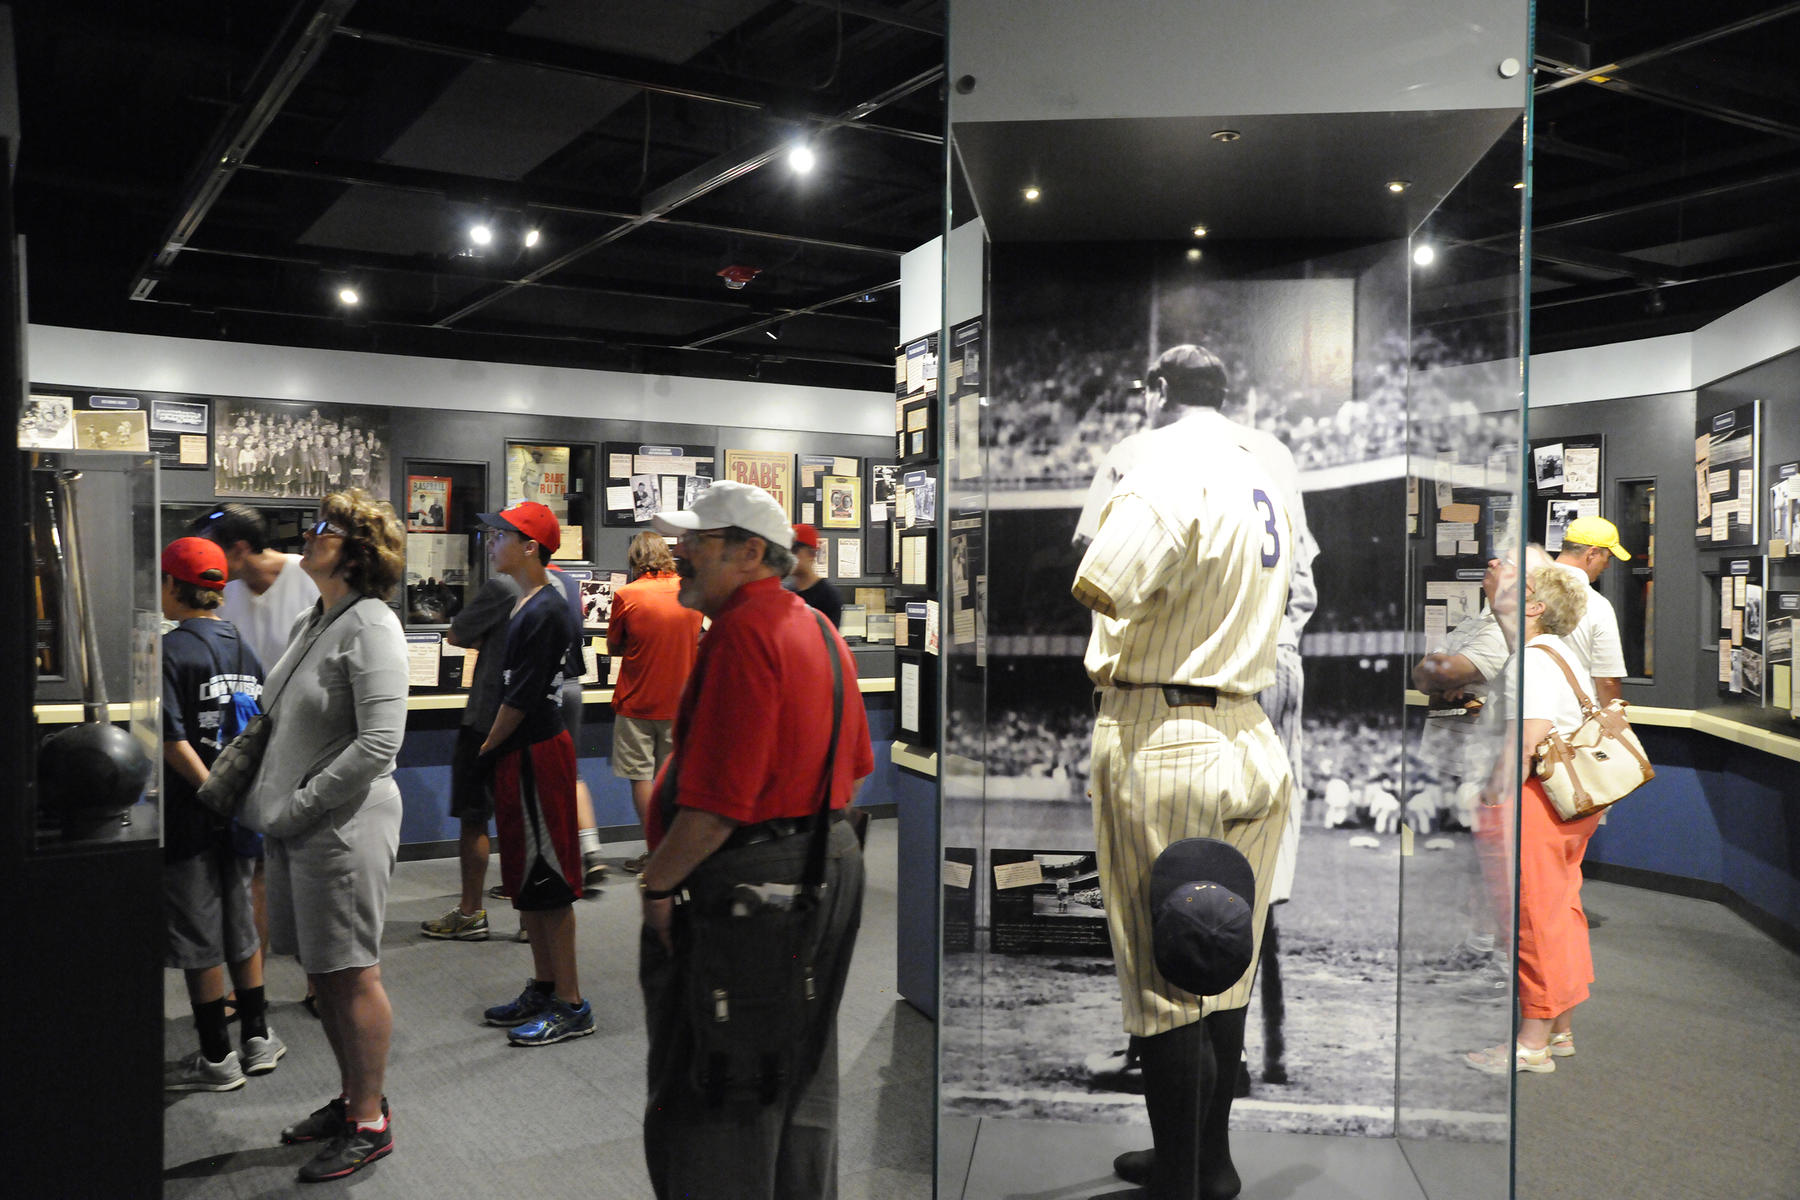 The National Baseball Hall of Fame and Museum opened <em>Babe Ruth: His Life and Legend</em> in 2014. (Milo Stewart Jr./National Baseball Hall of Fame and Museum)